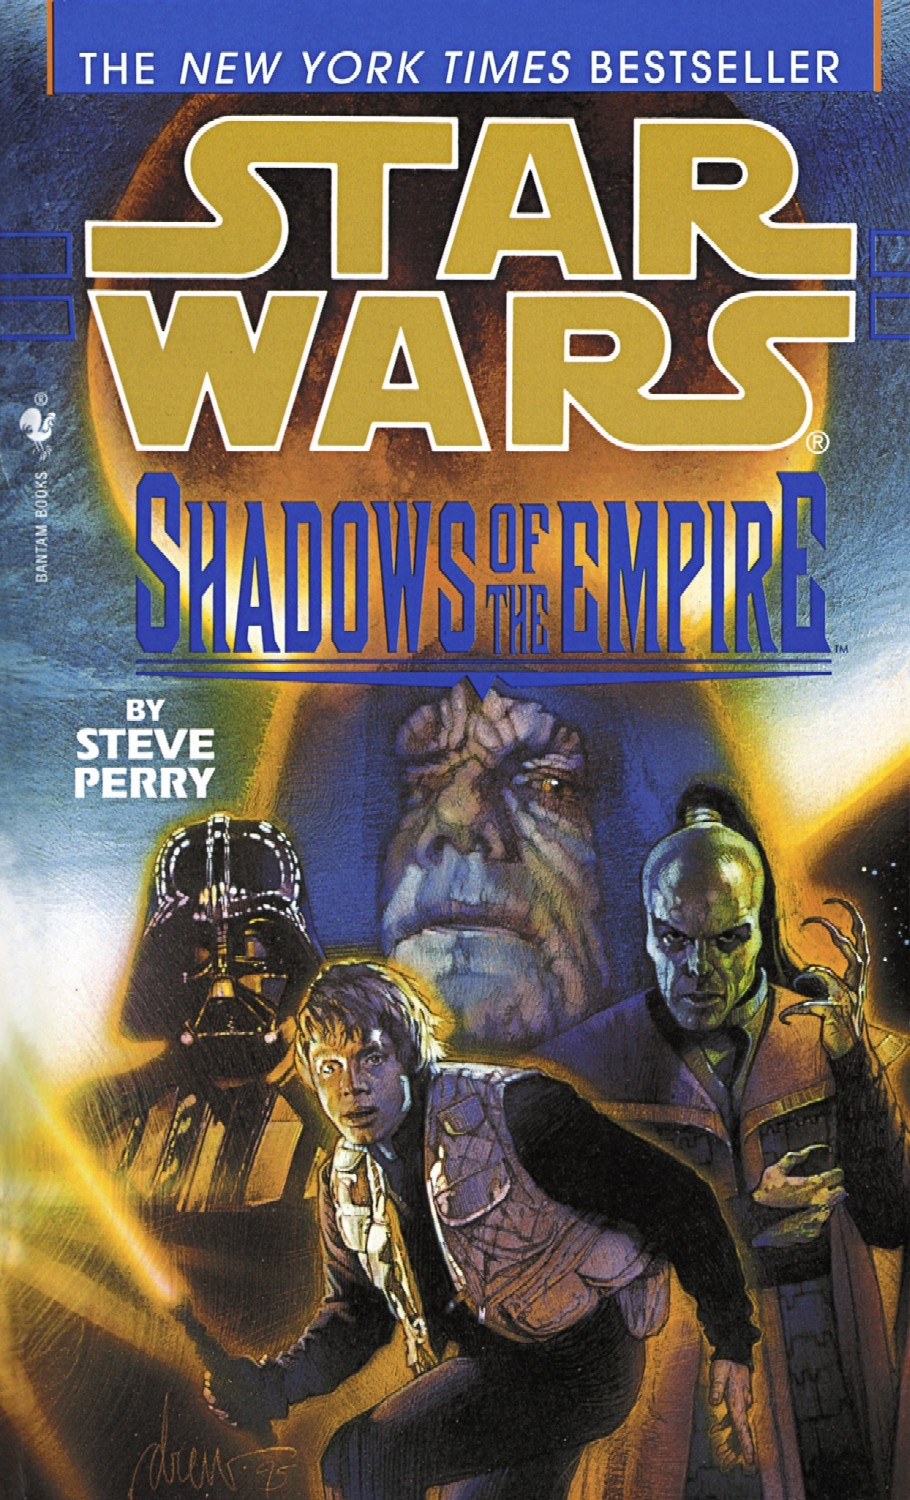 Star Wars: Shadows of the Empire  (paperback)